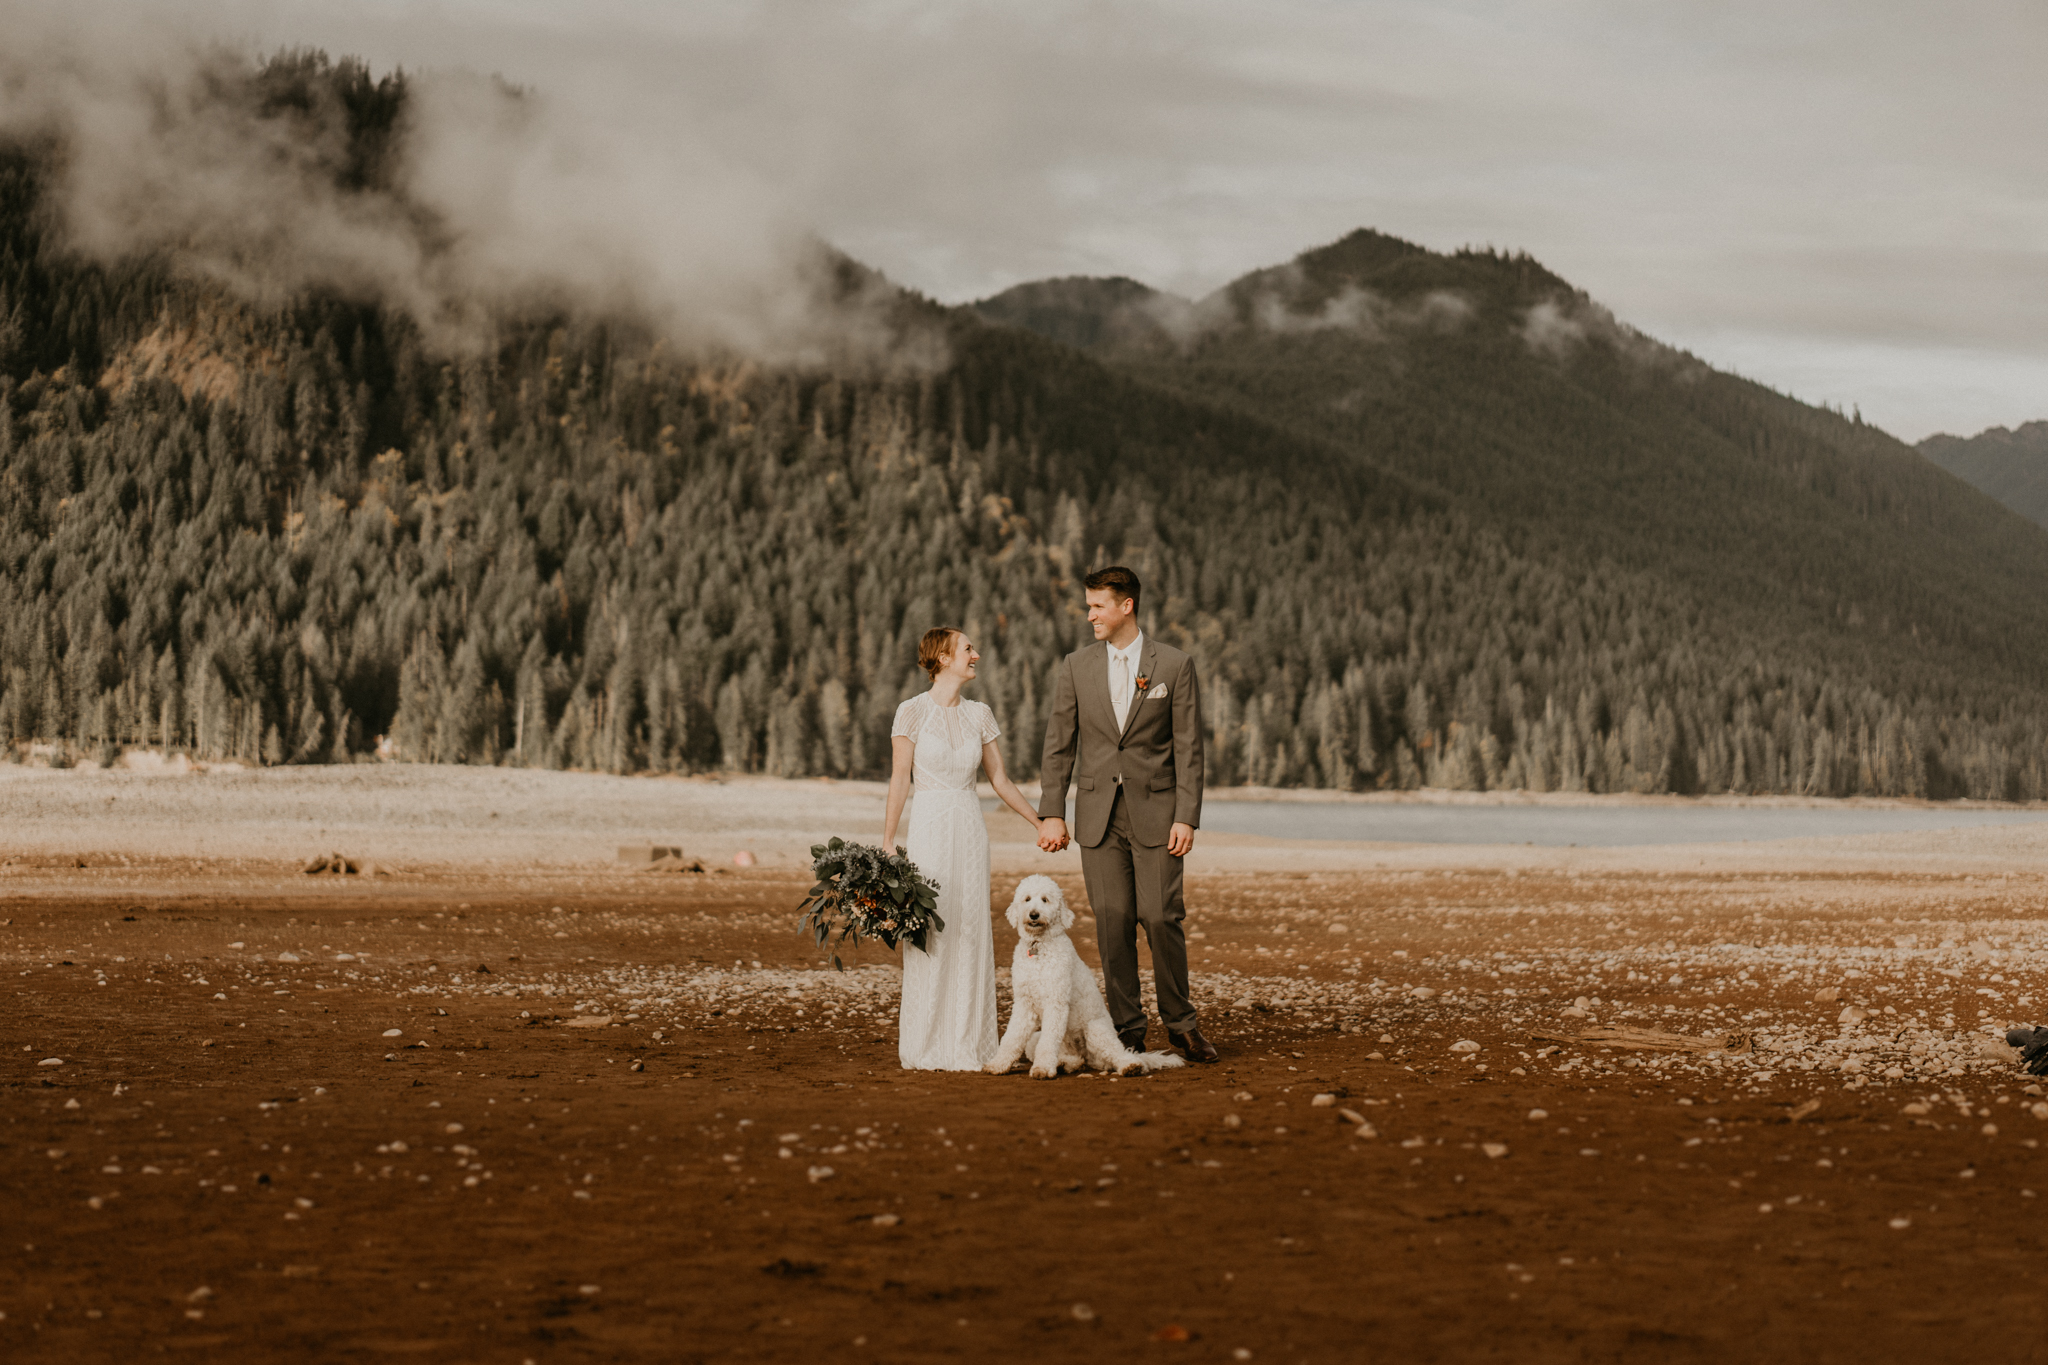 Bride and groom with their dog at Lake Cushman by Olympic National Park for their elopement